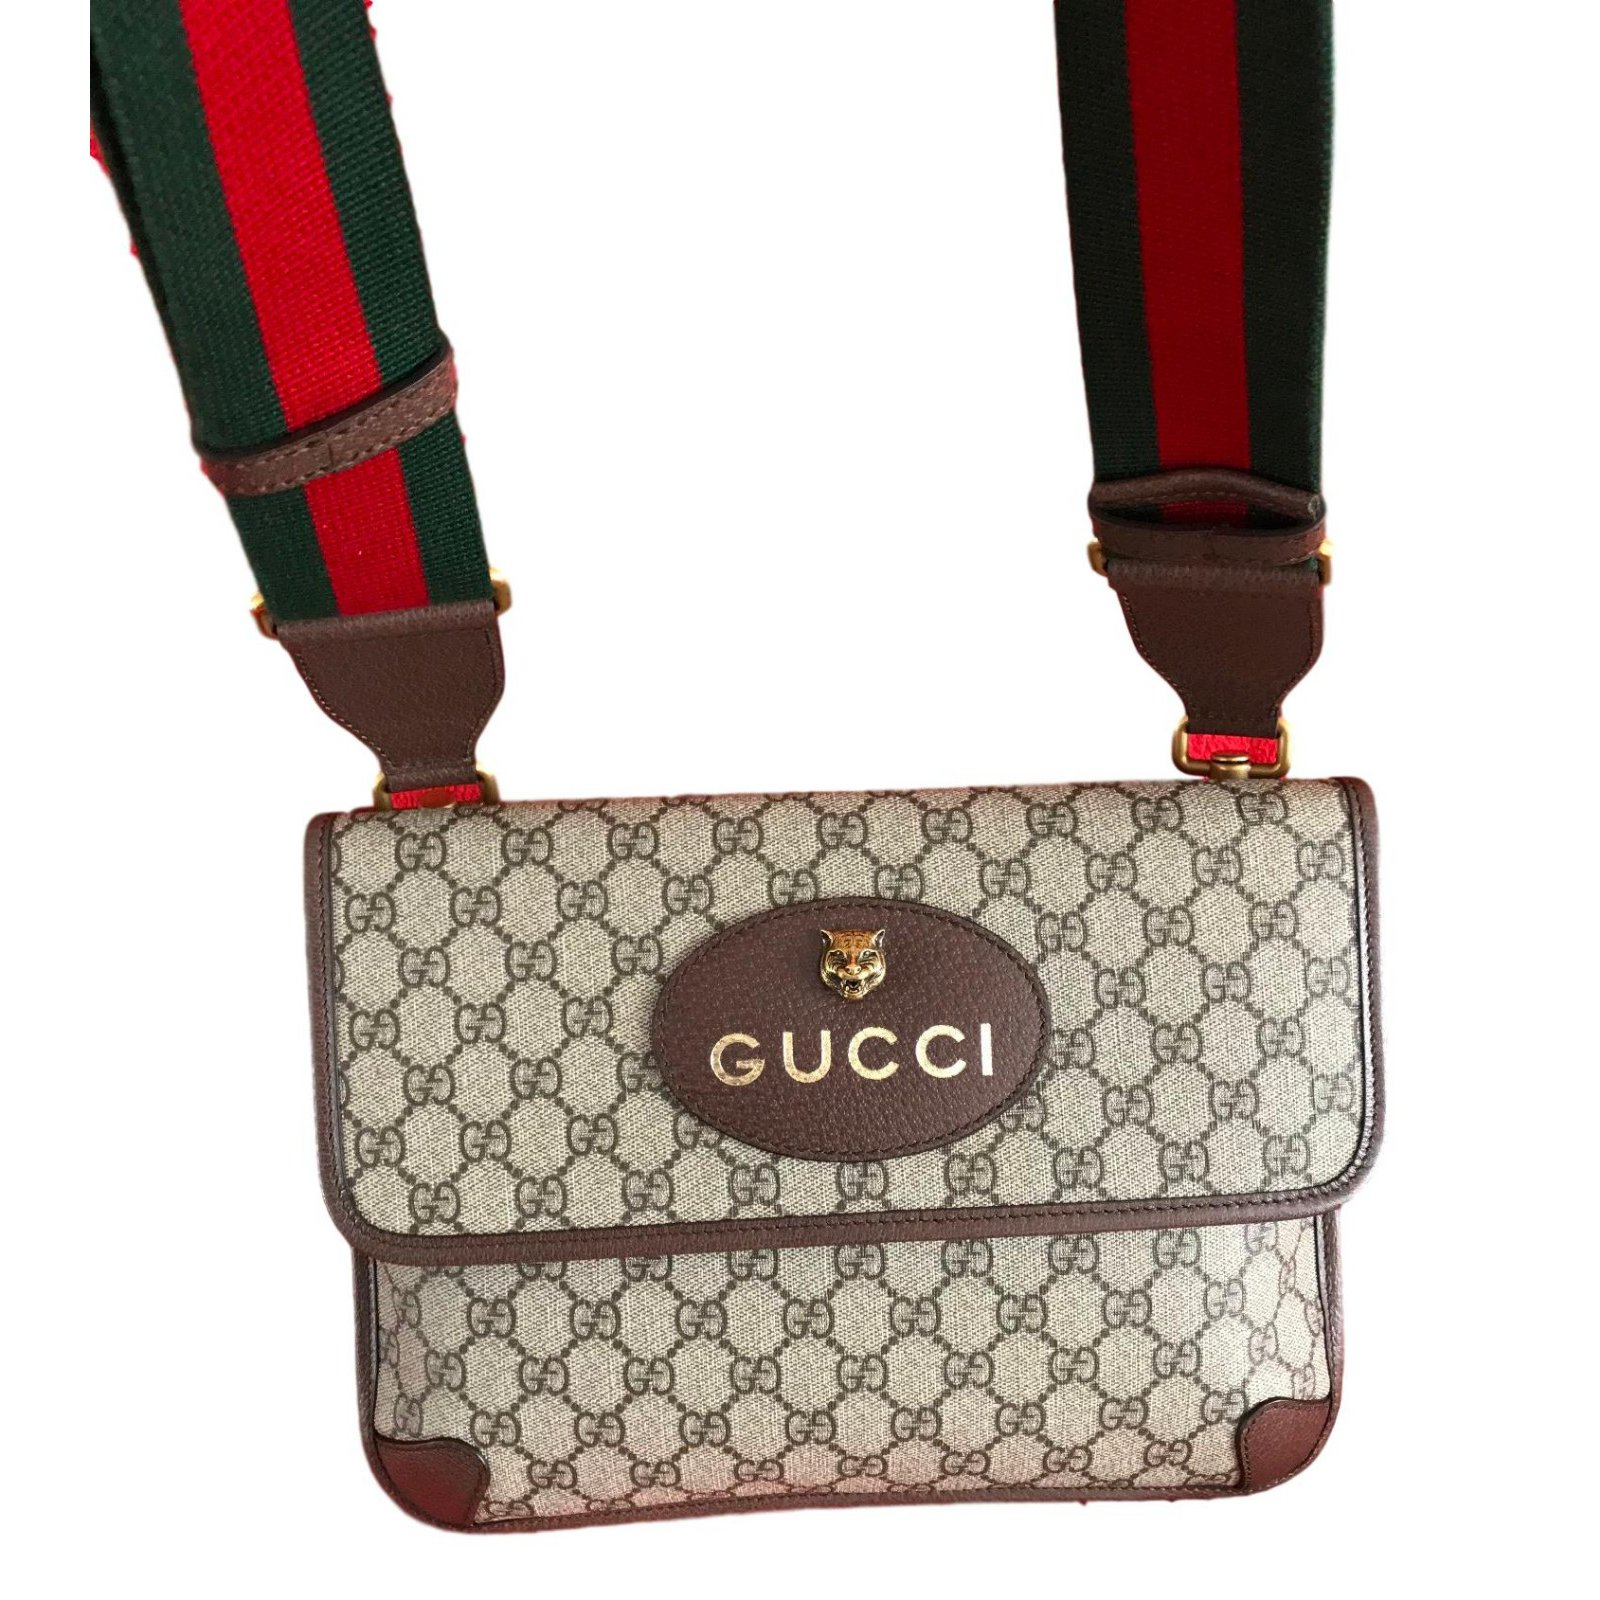 22fcdfd21 Gucci GG Supreme messenger bag -Style ?495654 Bags Briefcases Cloth  Multiple colors ref.